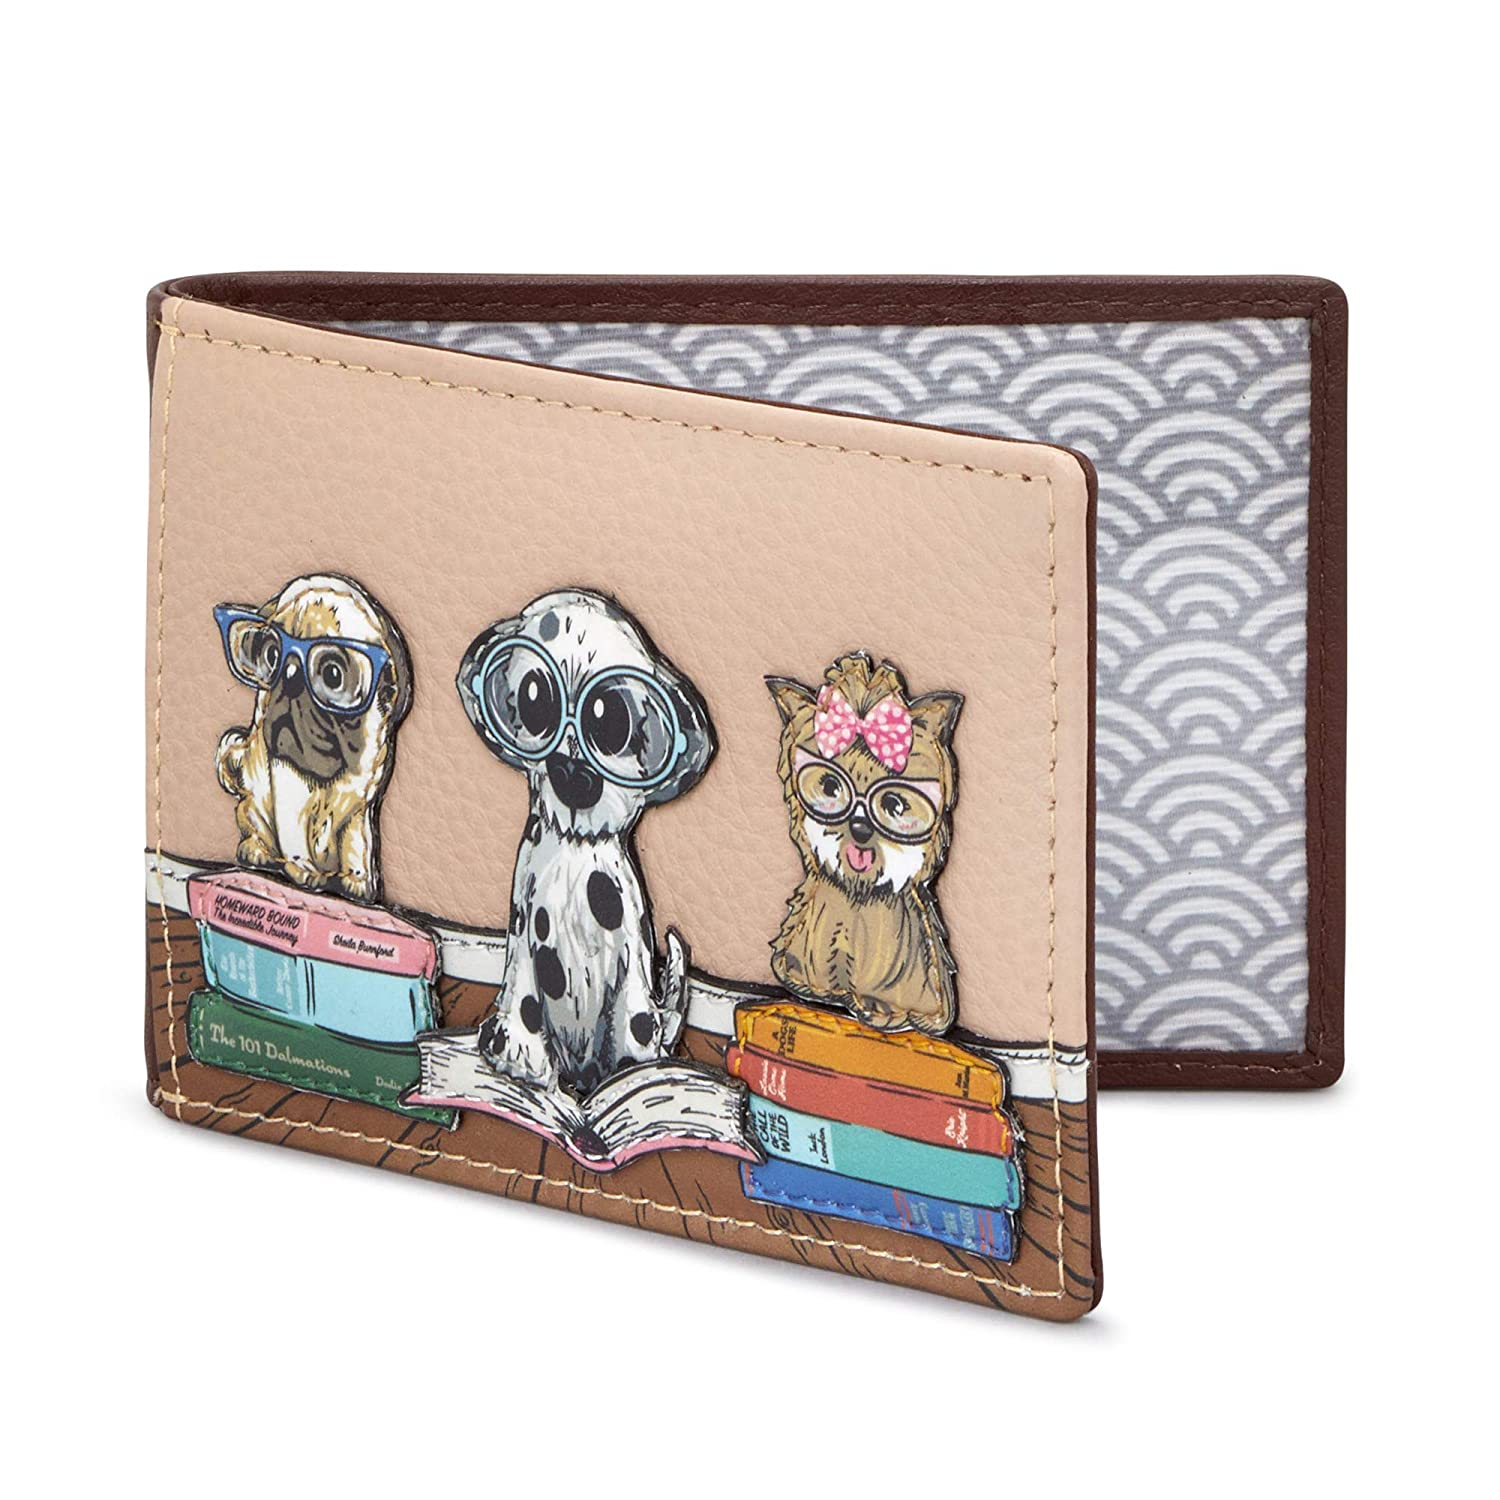 Bookhound Gang Leather Travel Pass Holder by Yoshi